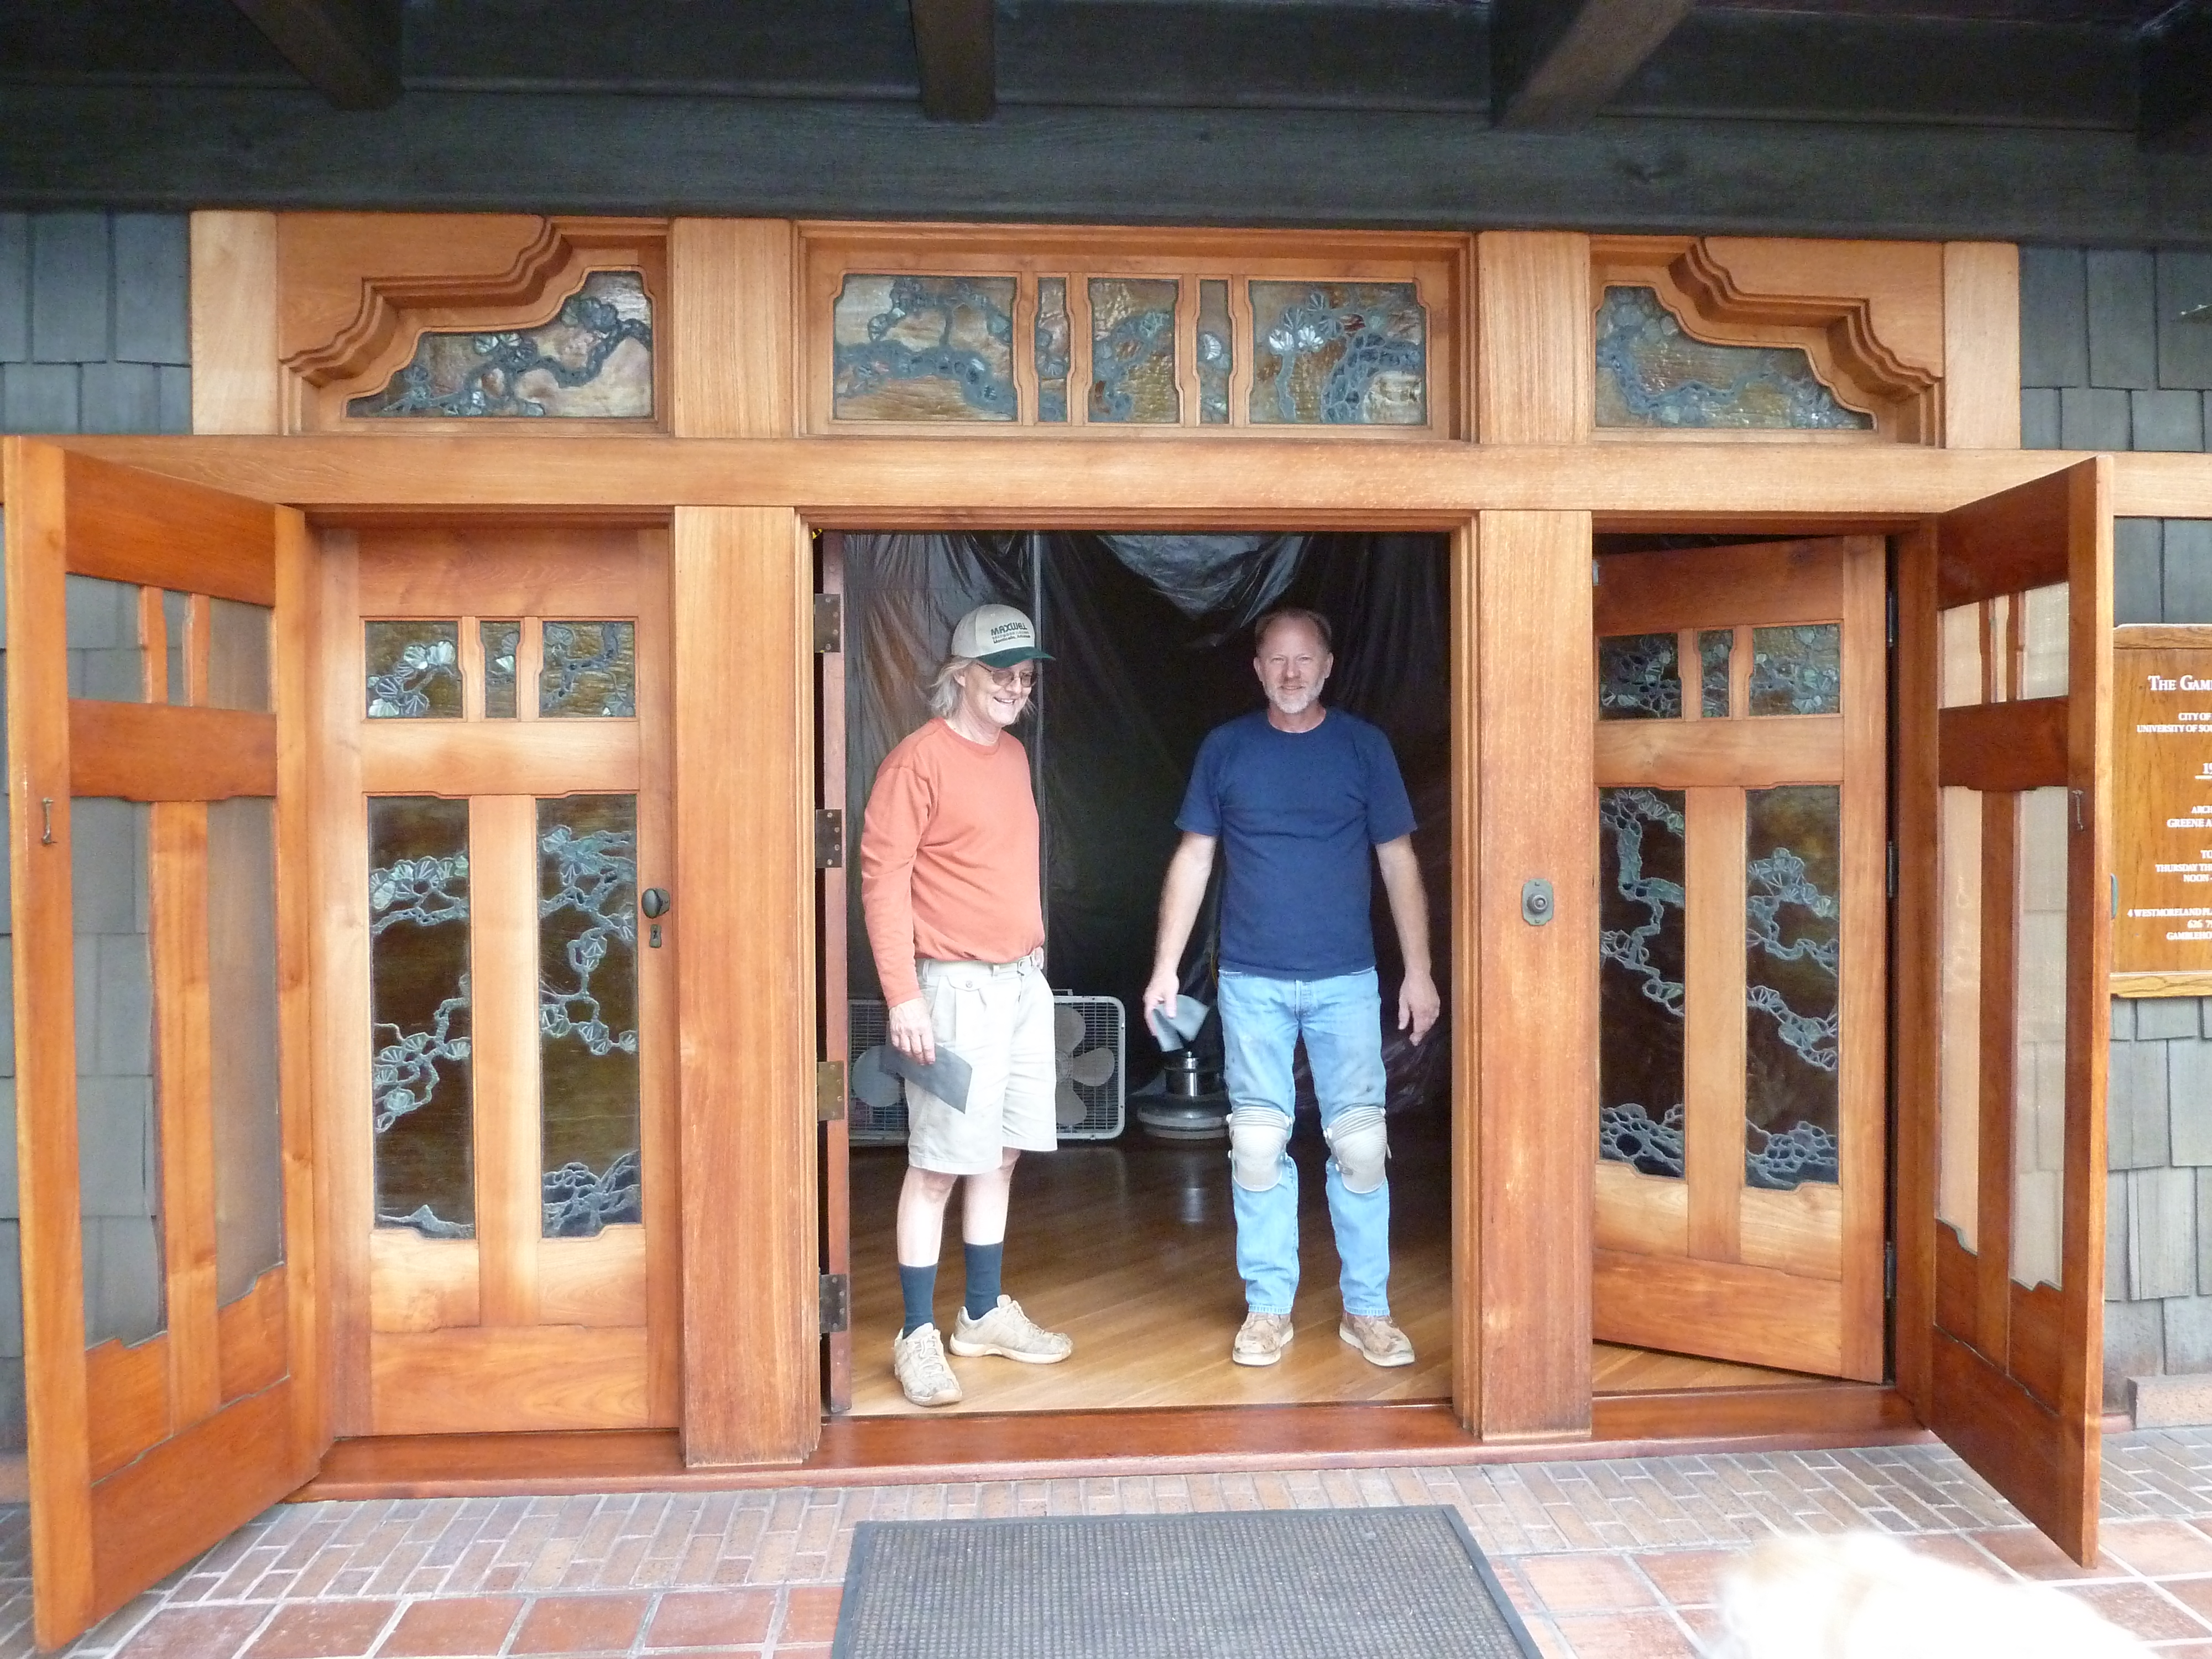 Pete and Dan in front of the beautiful doors of the Gamble House July 2012 & The Gamble House | Pete\u0027s Floors